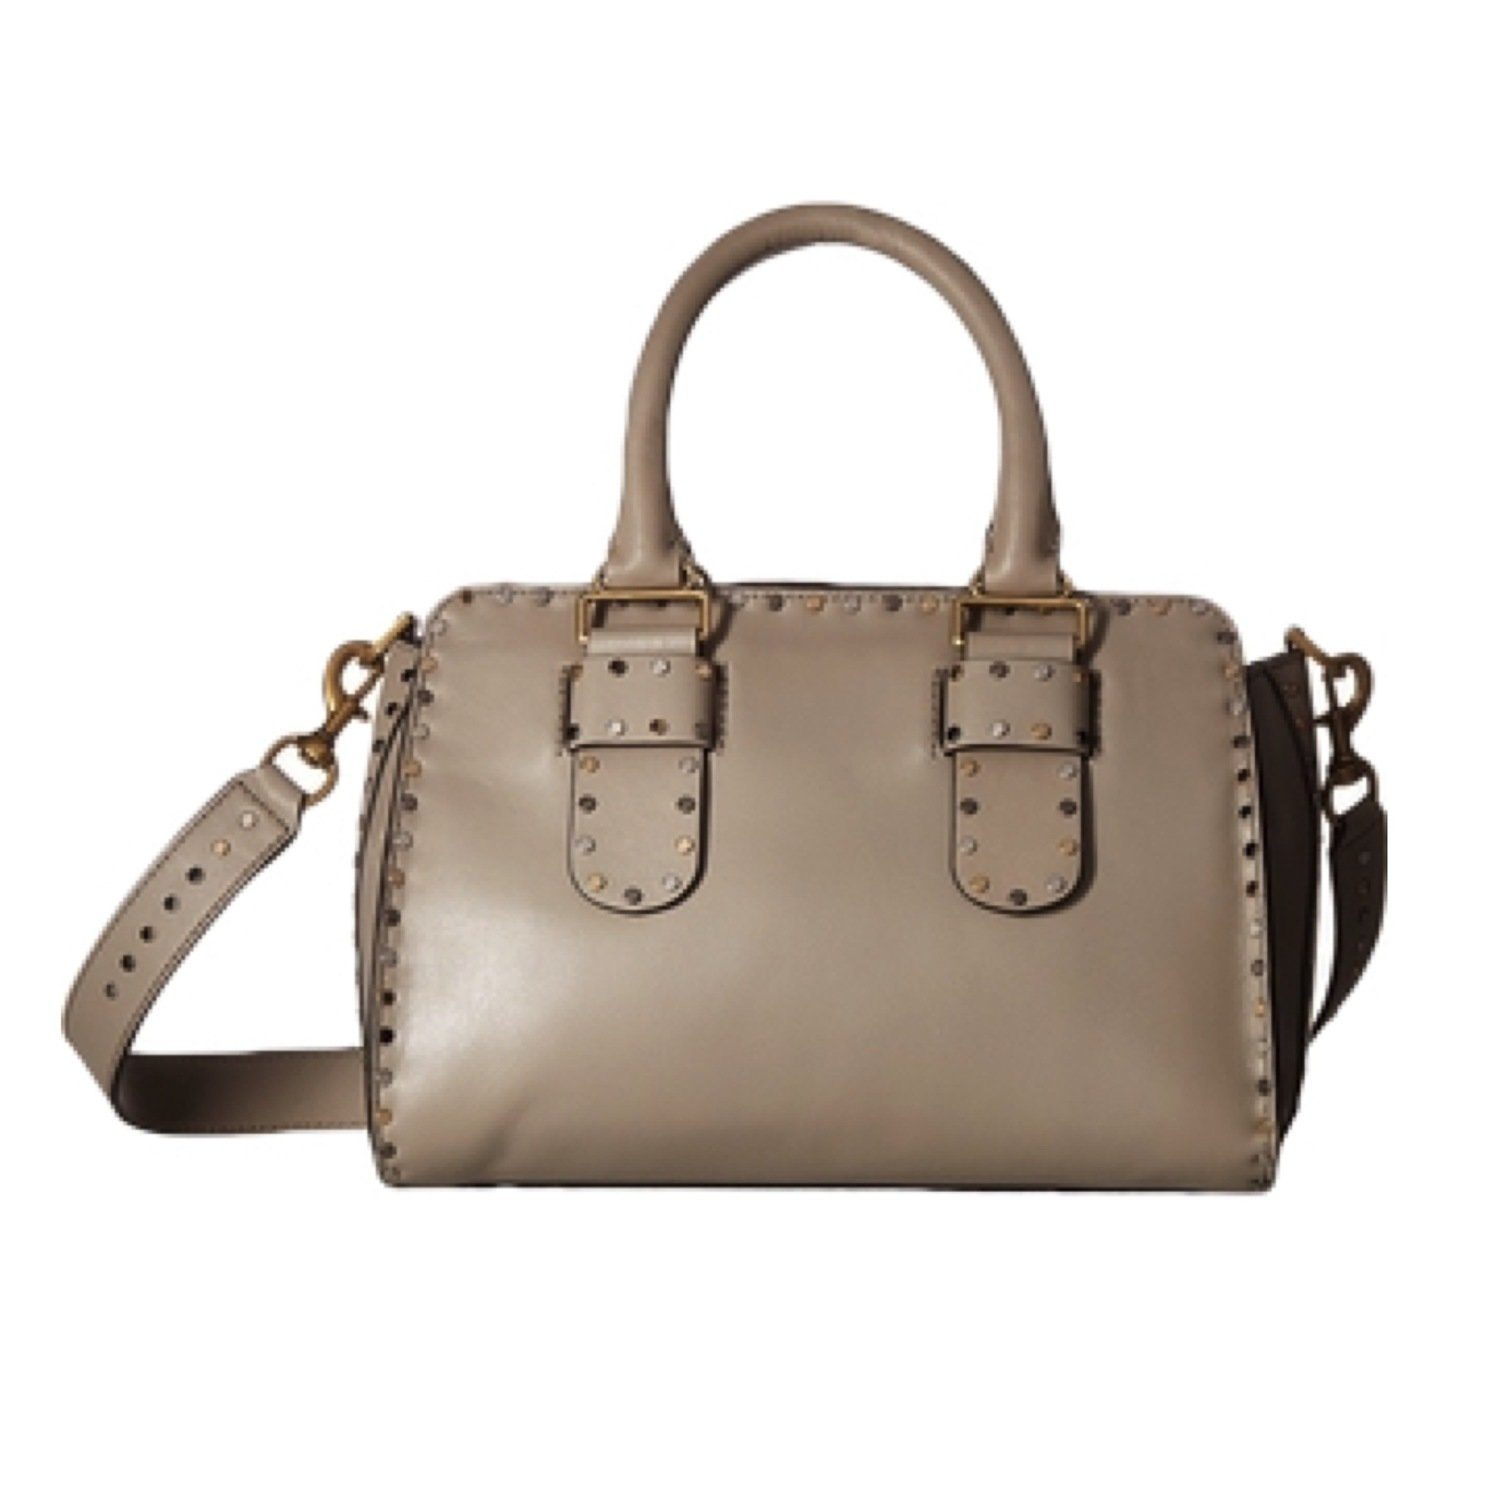 REBECCA MINKOFF - Midnighter Handbag  Large Satchel - Taupe